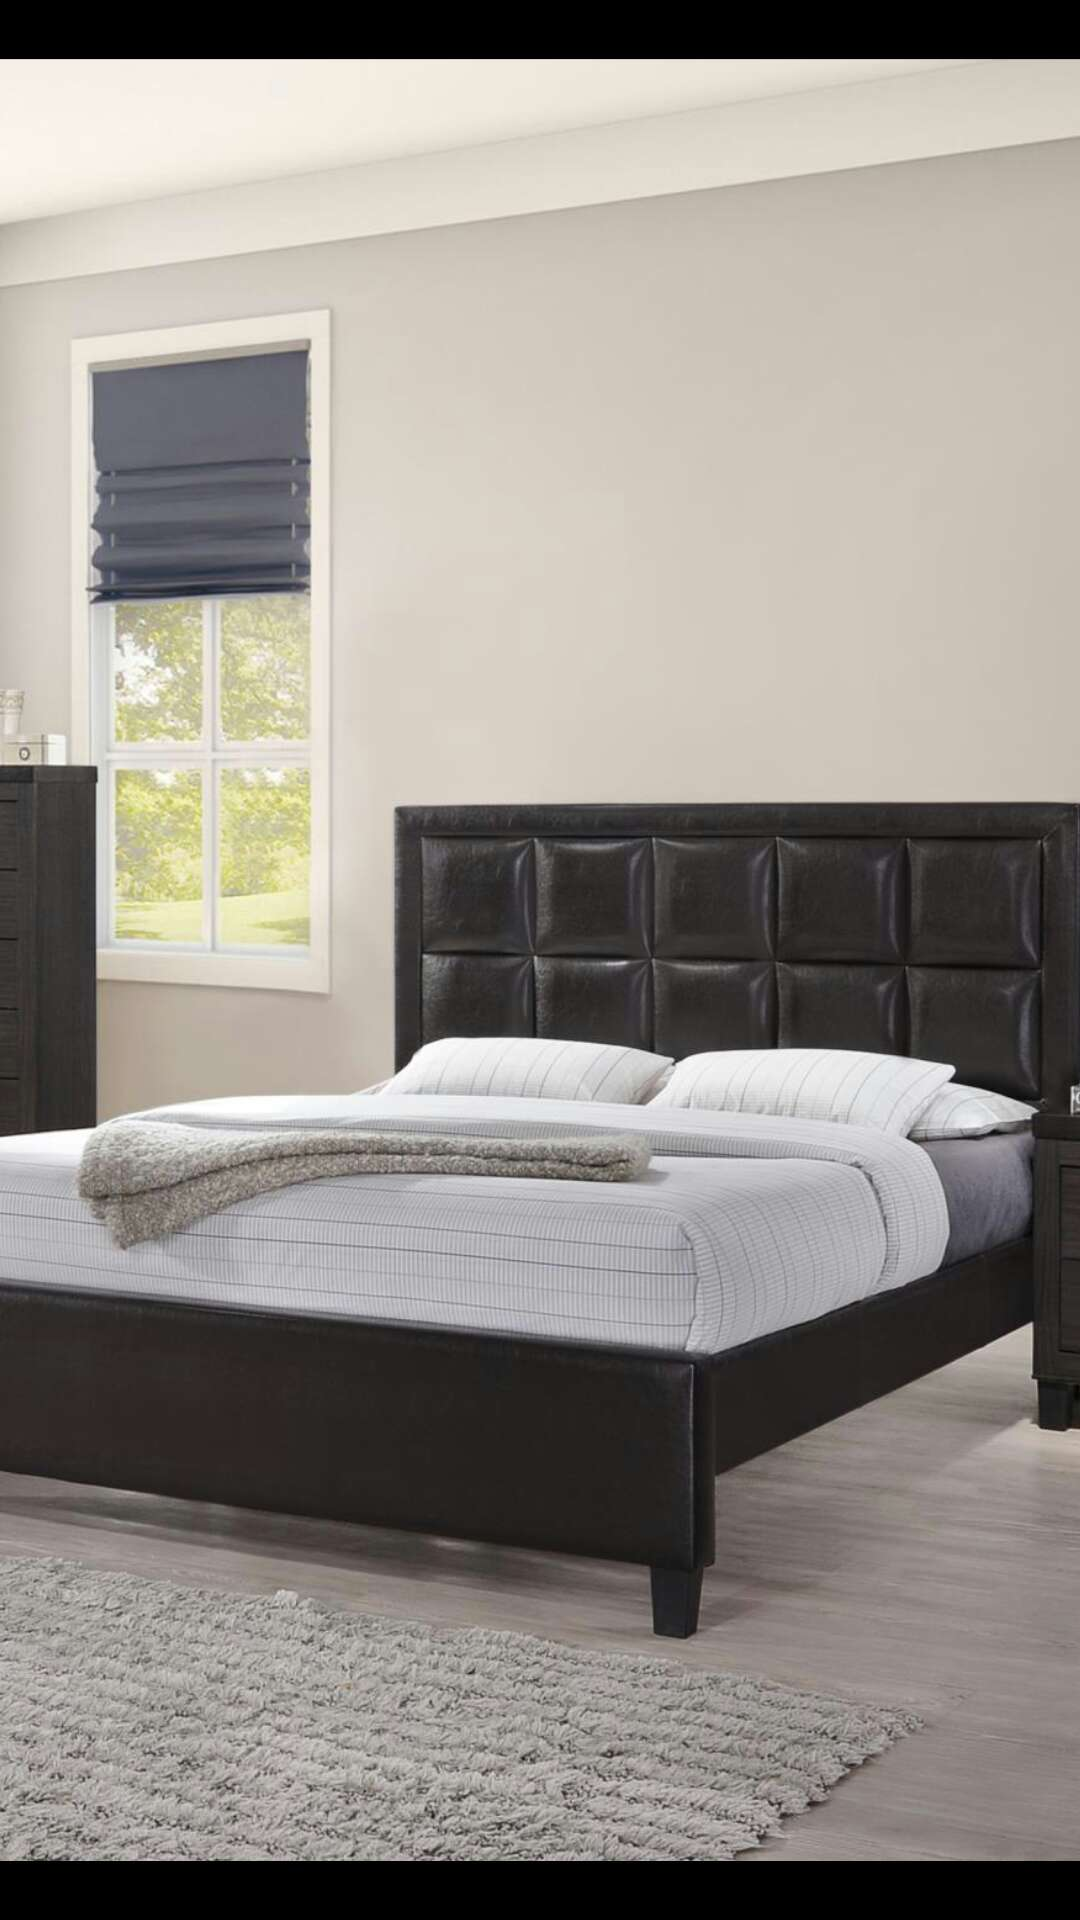 Brand New Queen Platform Bed For Sale In Silver Spring Md 5miles Buy And Sell